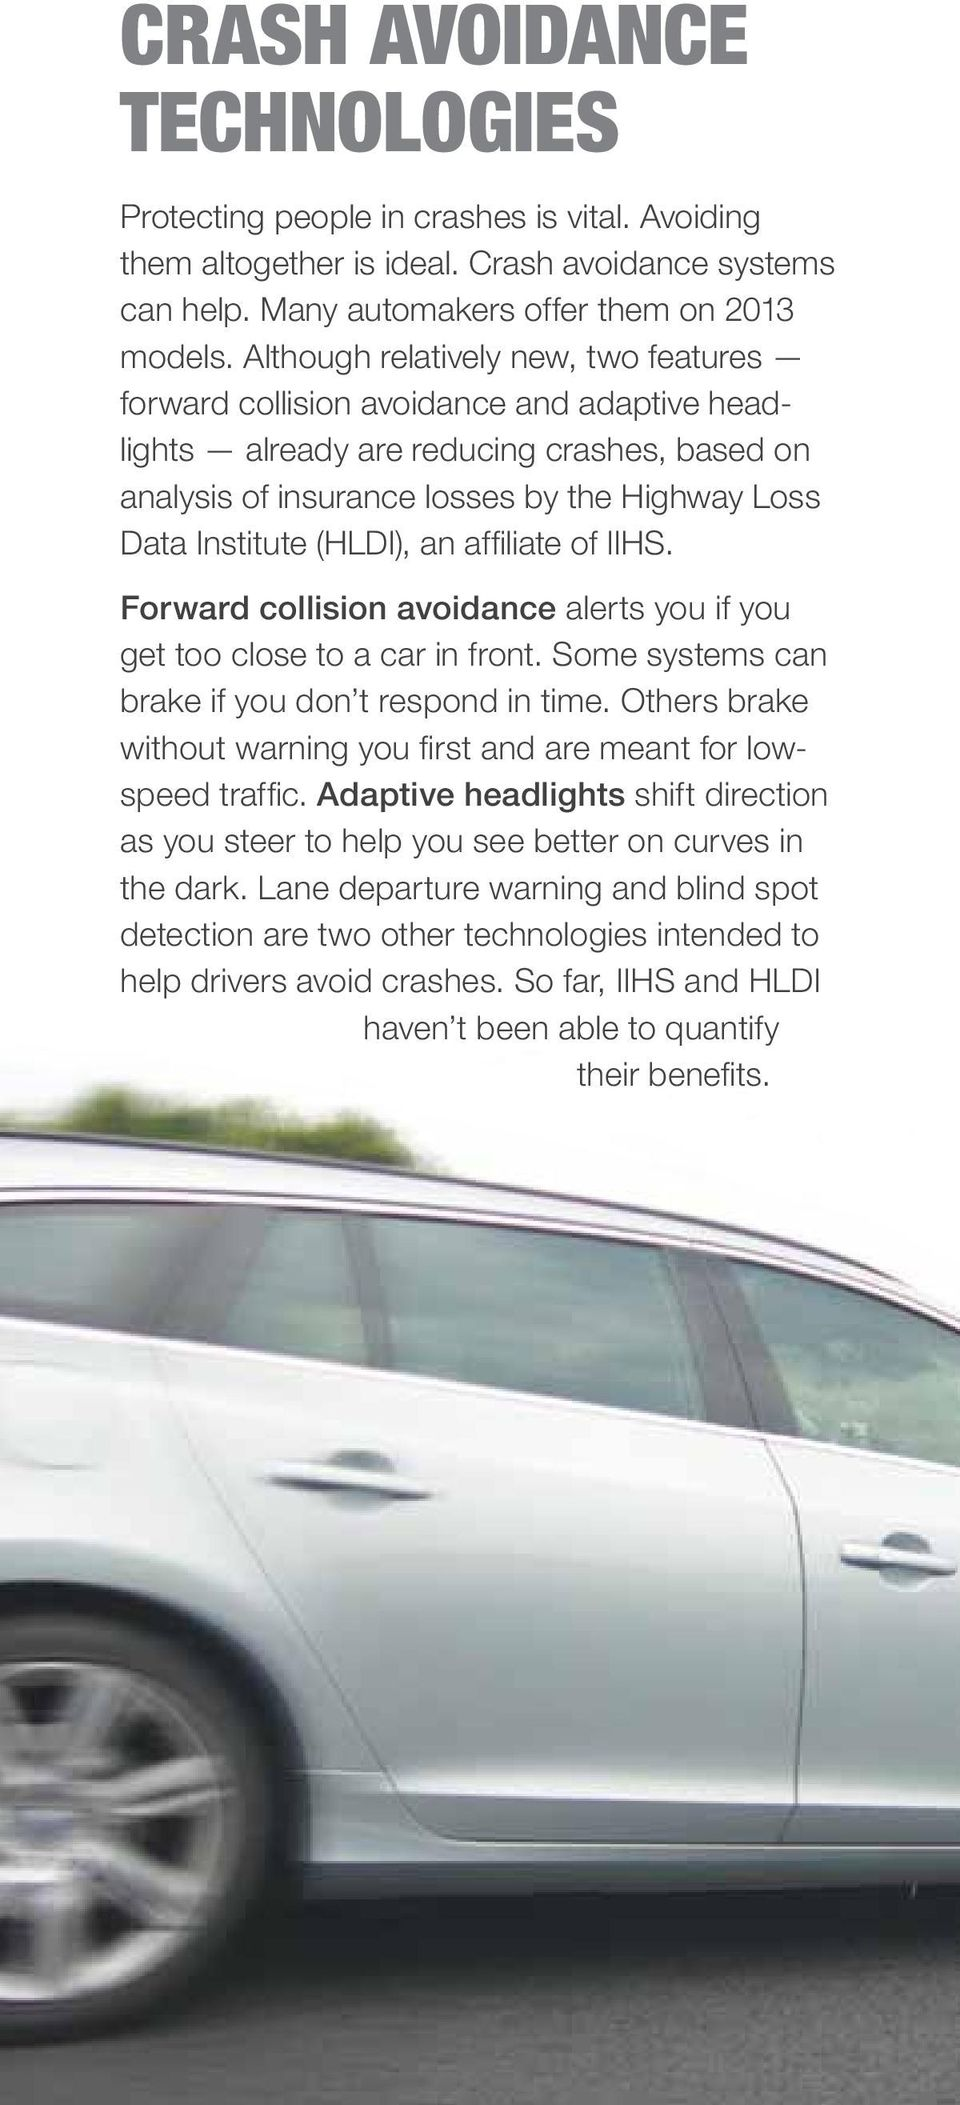 (HLDI), an affiliate of IIHS. Forward collision avoidance alerts you if you get too close to a car in front. Some systems can brake if you don t respond in time.